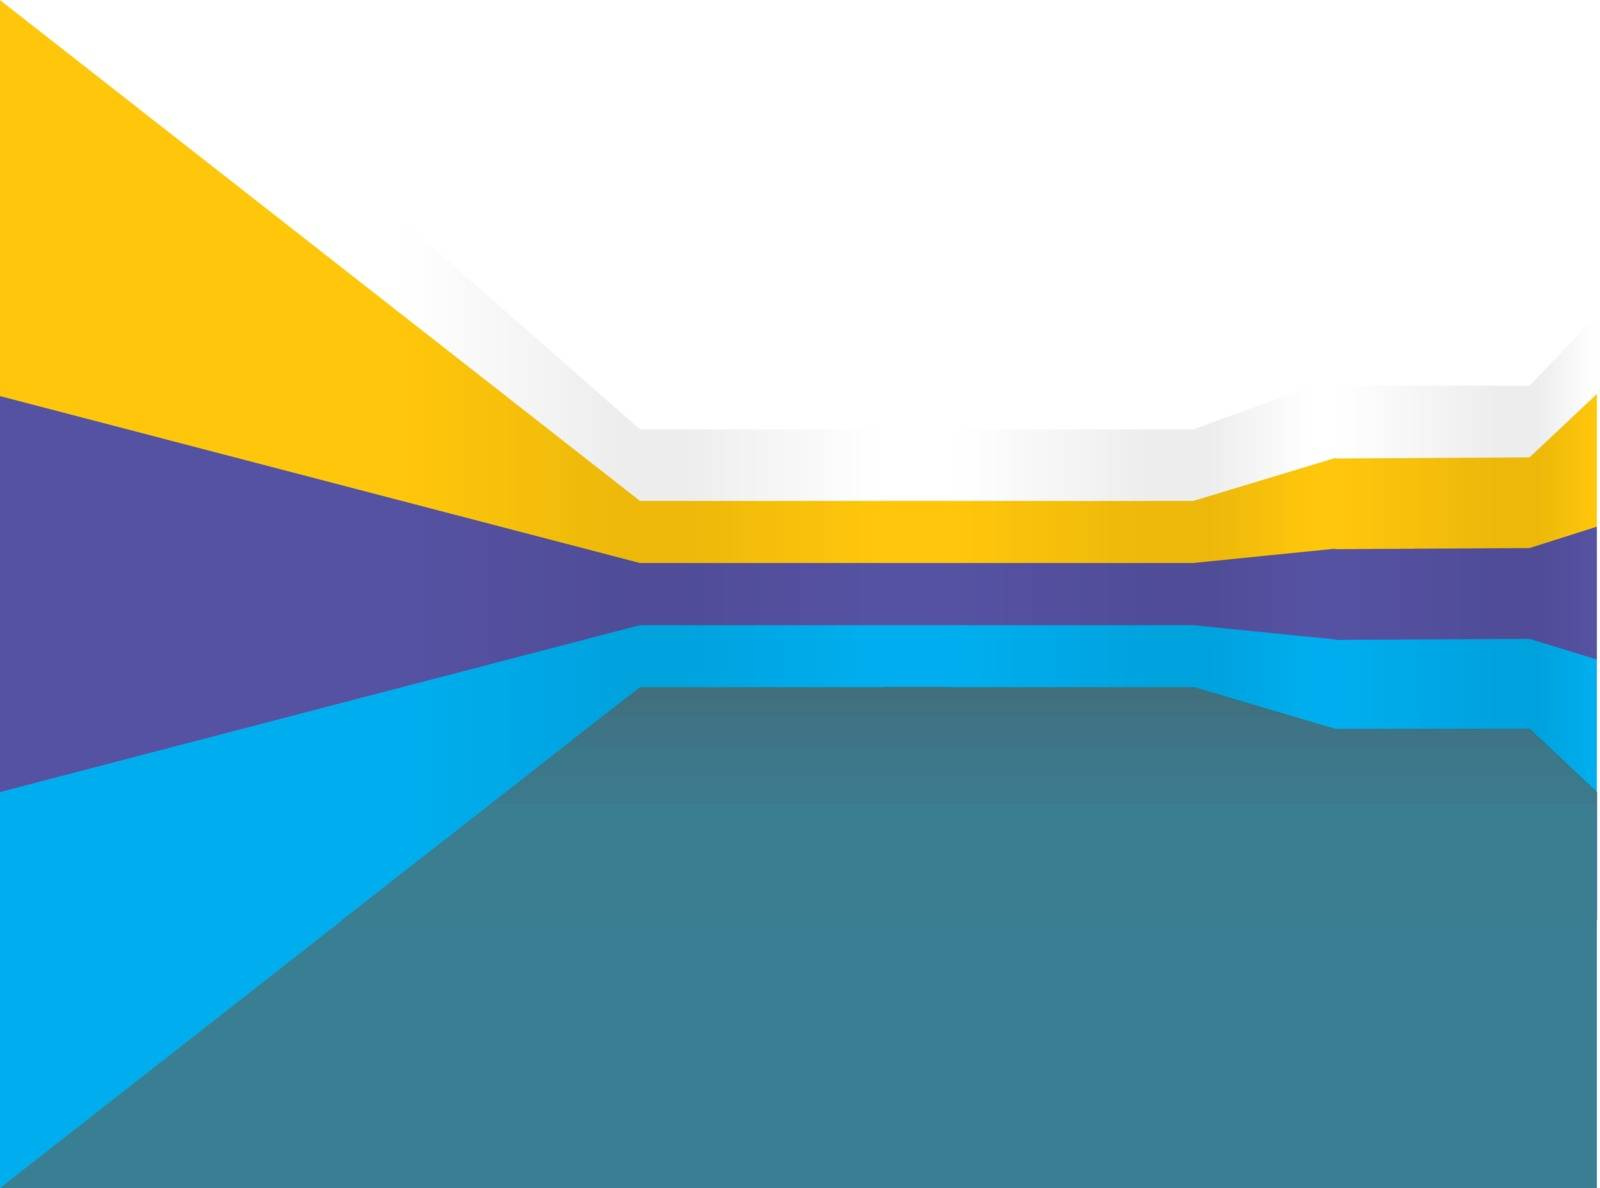 vector illustration of a beautiful wall prospects in different colors